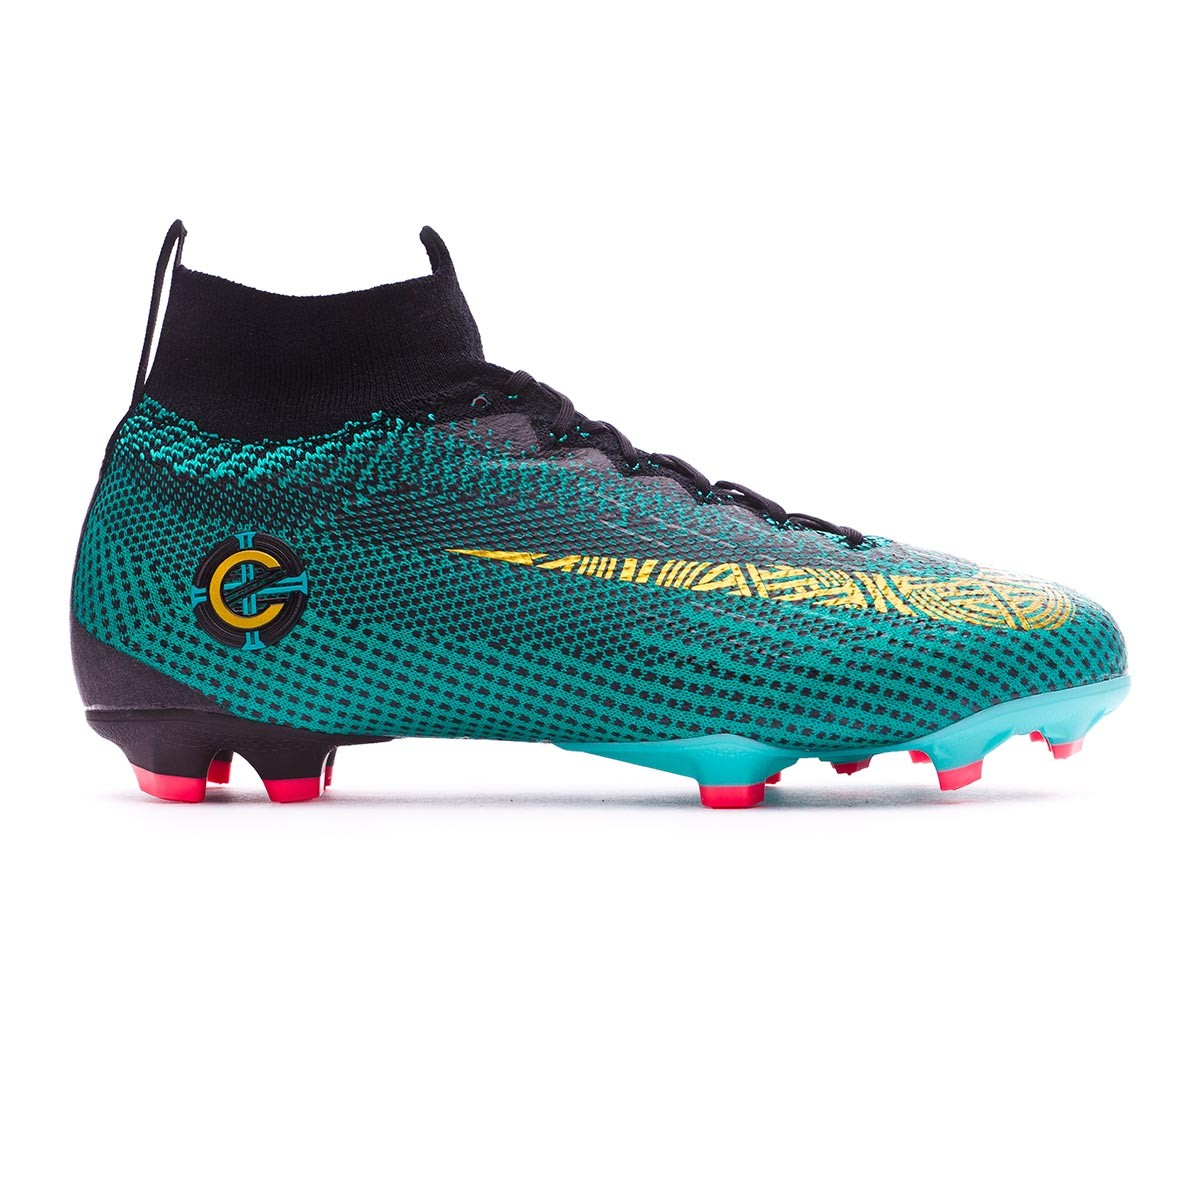 d88057357 Football Boots Nike Kids Mercurial Superfly VI Elite CR7 FG Clear jade-Metallic  vivid gold-Black - Tienda de fútbol Fútbol Emotion